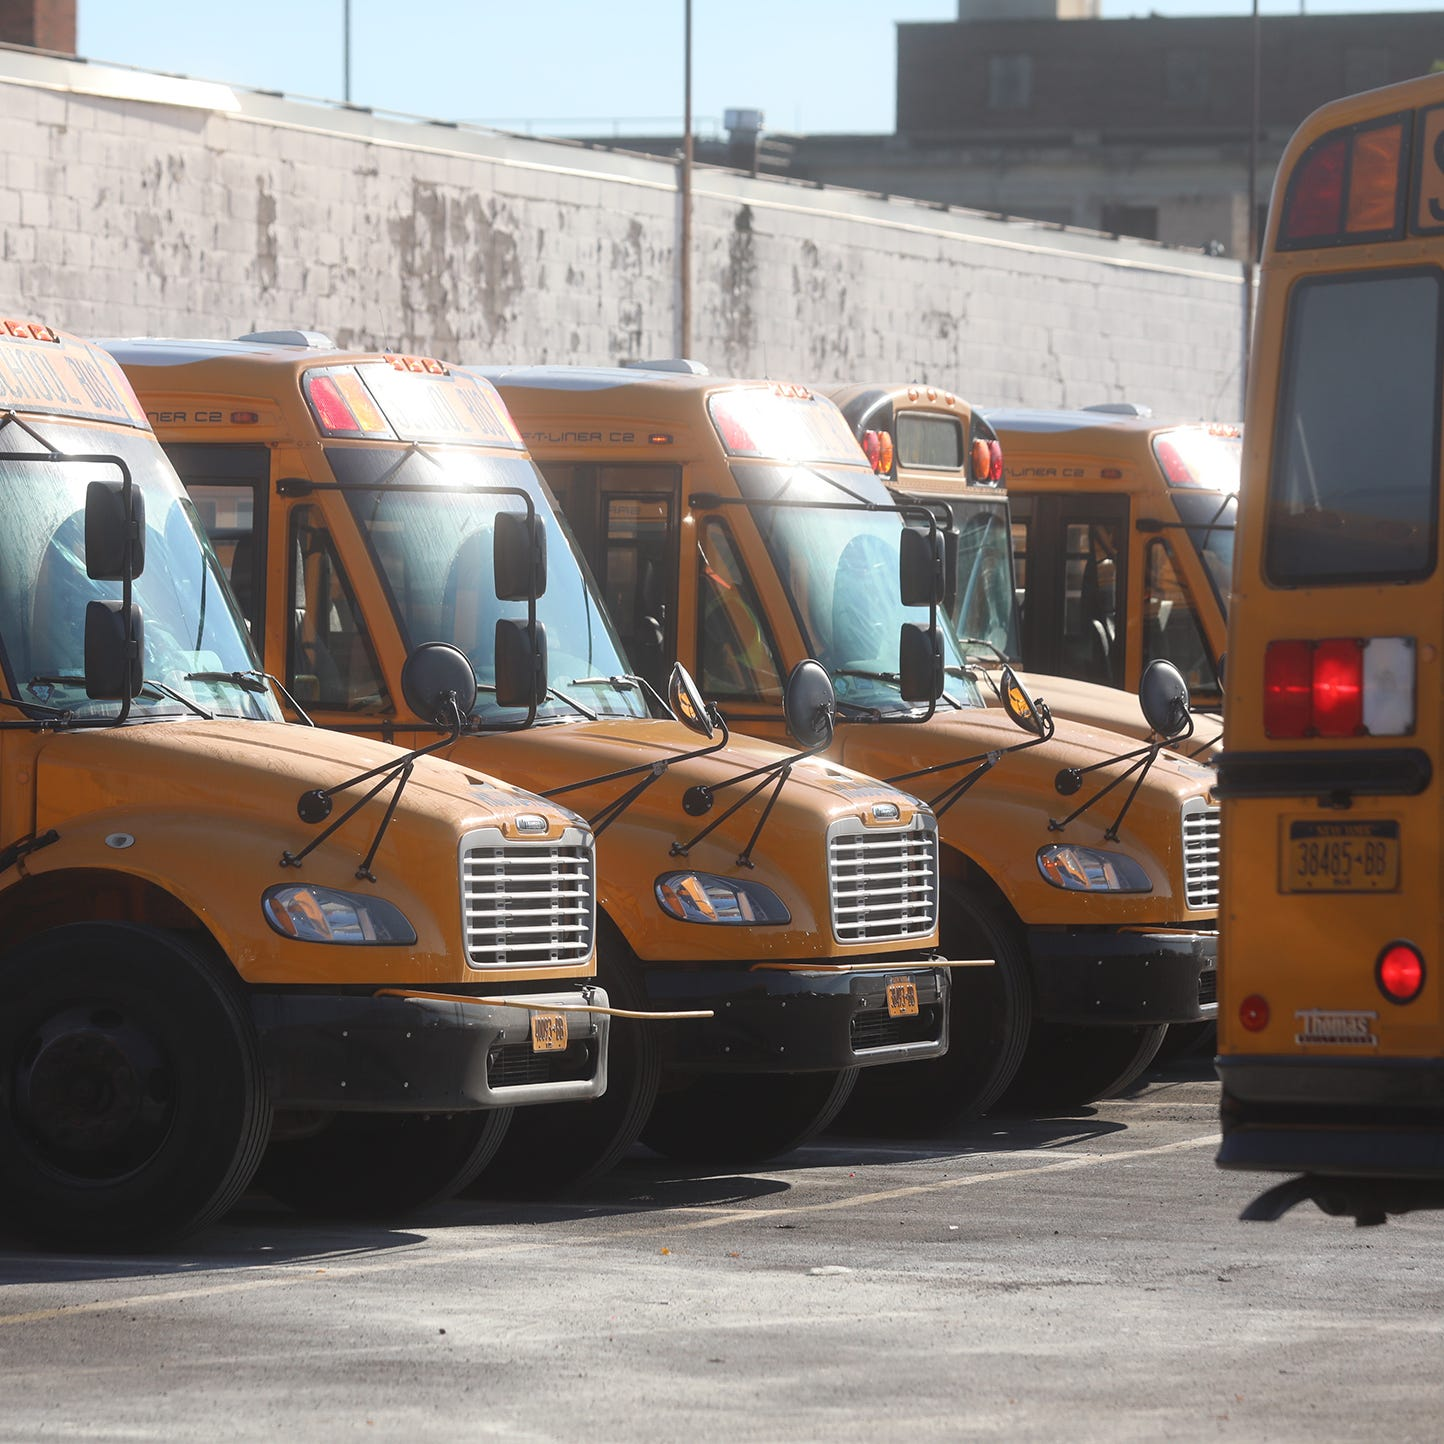 35 school buses vandalized; some Rochester students picked up late